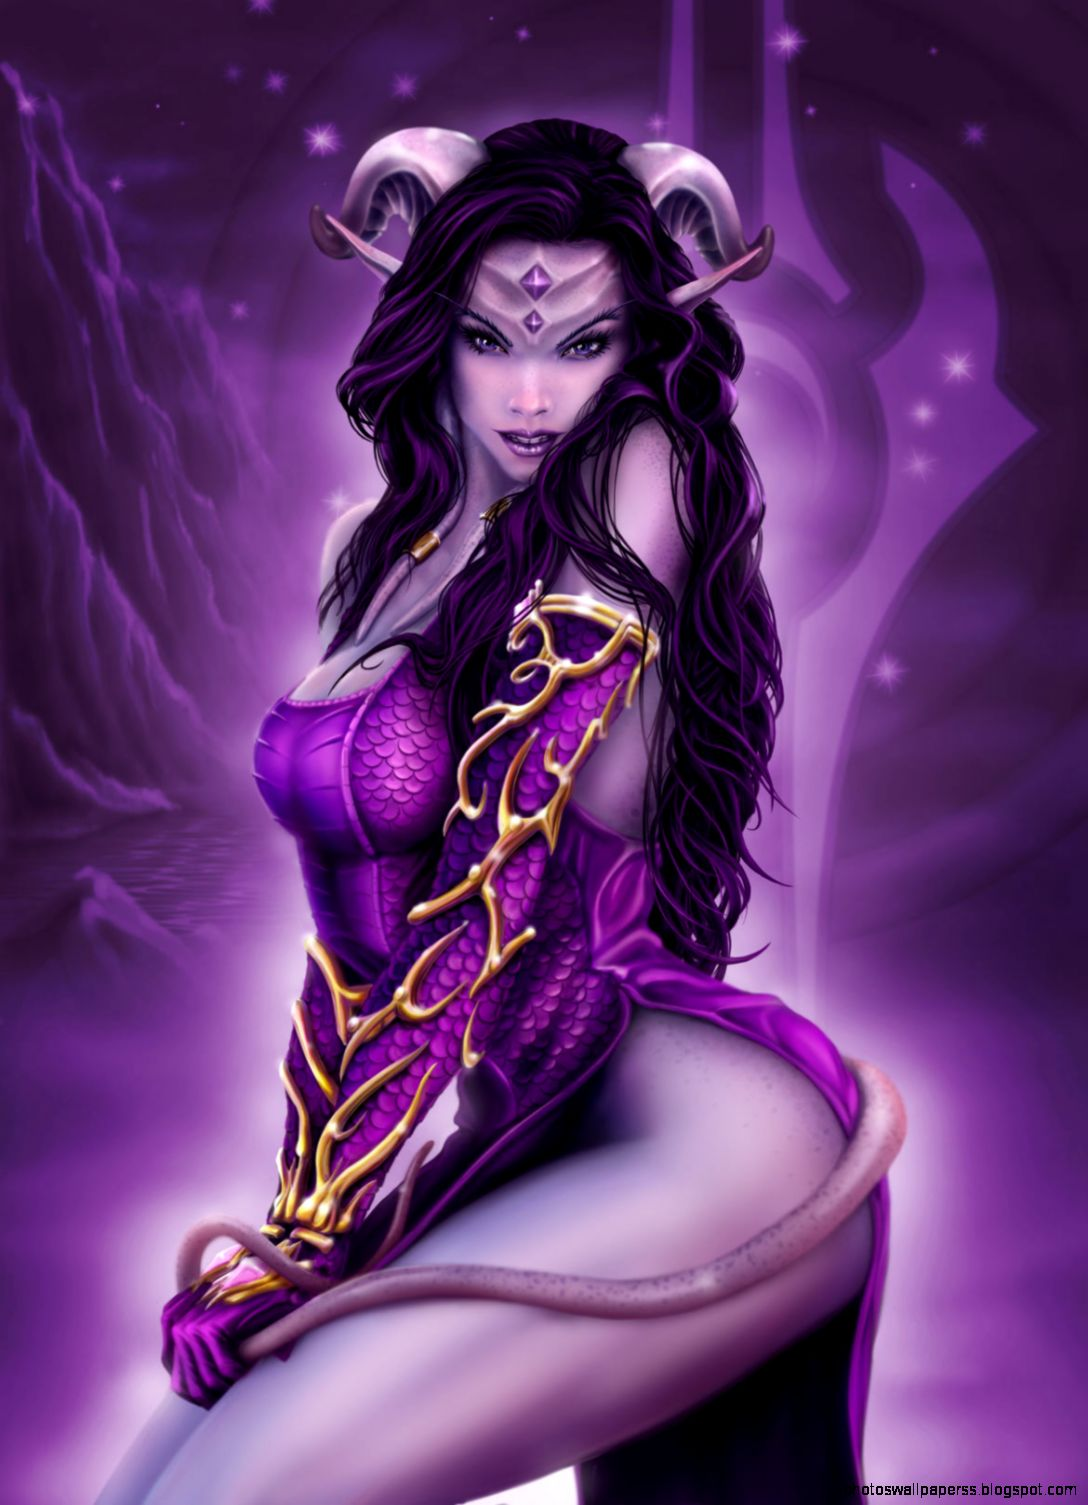 World of warcraft hottest draenei girl xxx pictures